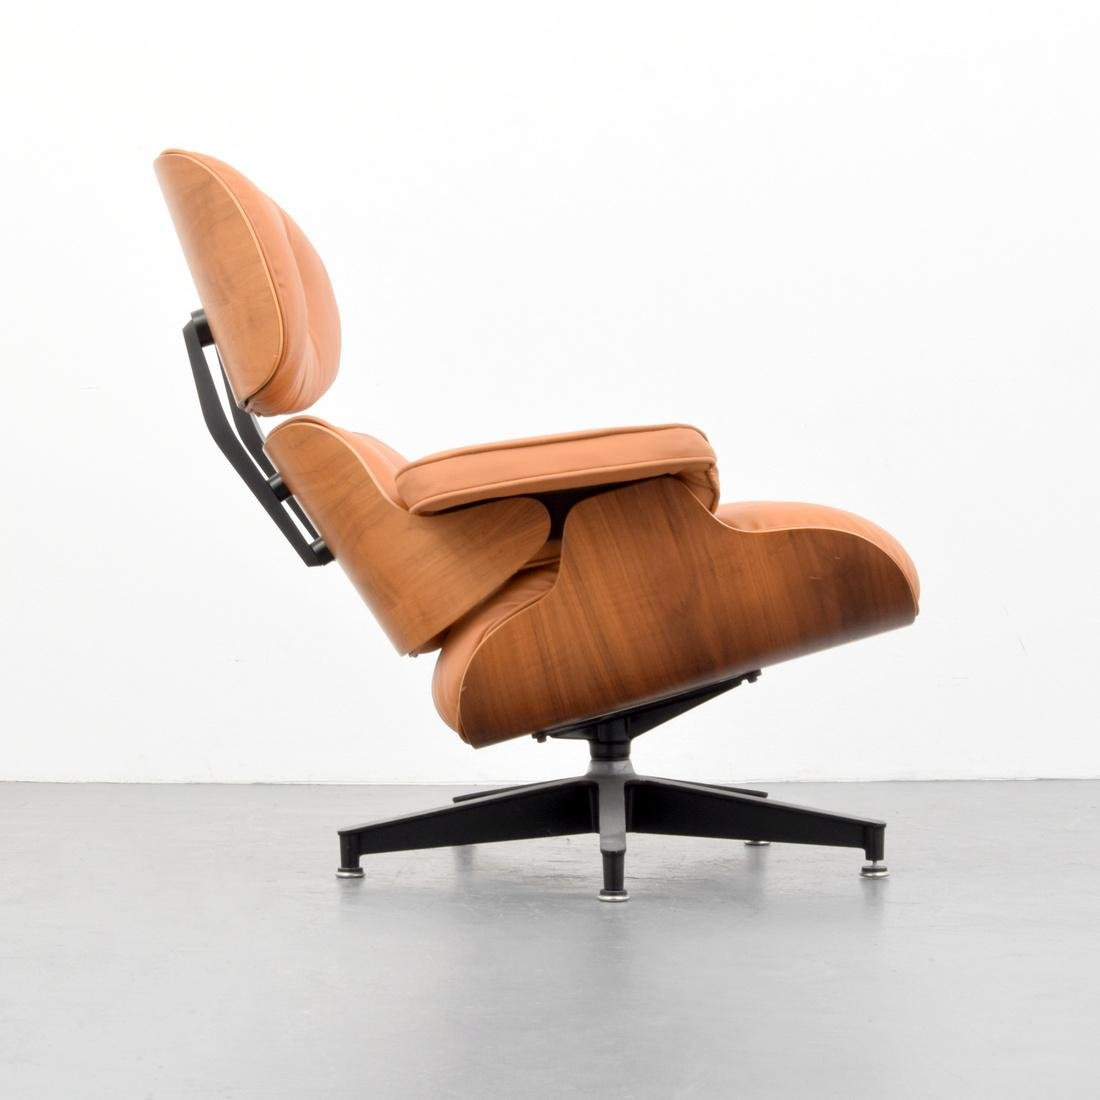 Charles & Ray Eames Lounge Chair - 7